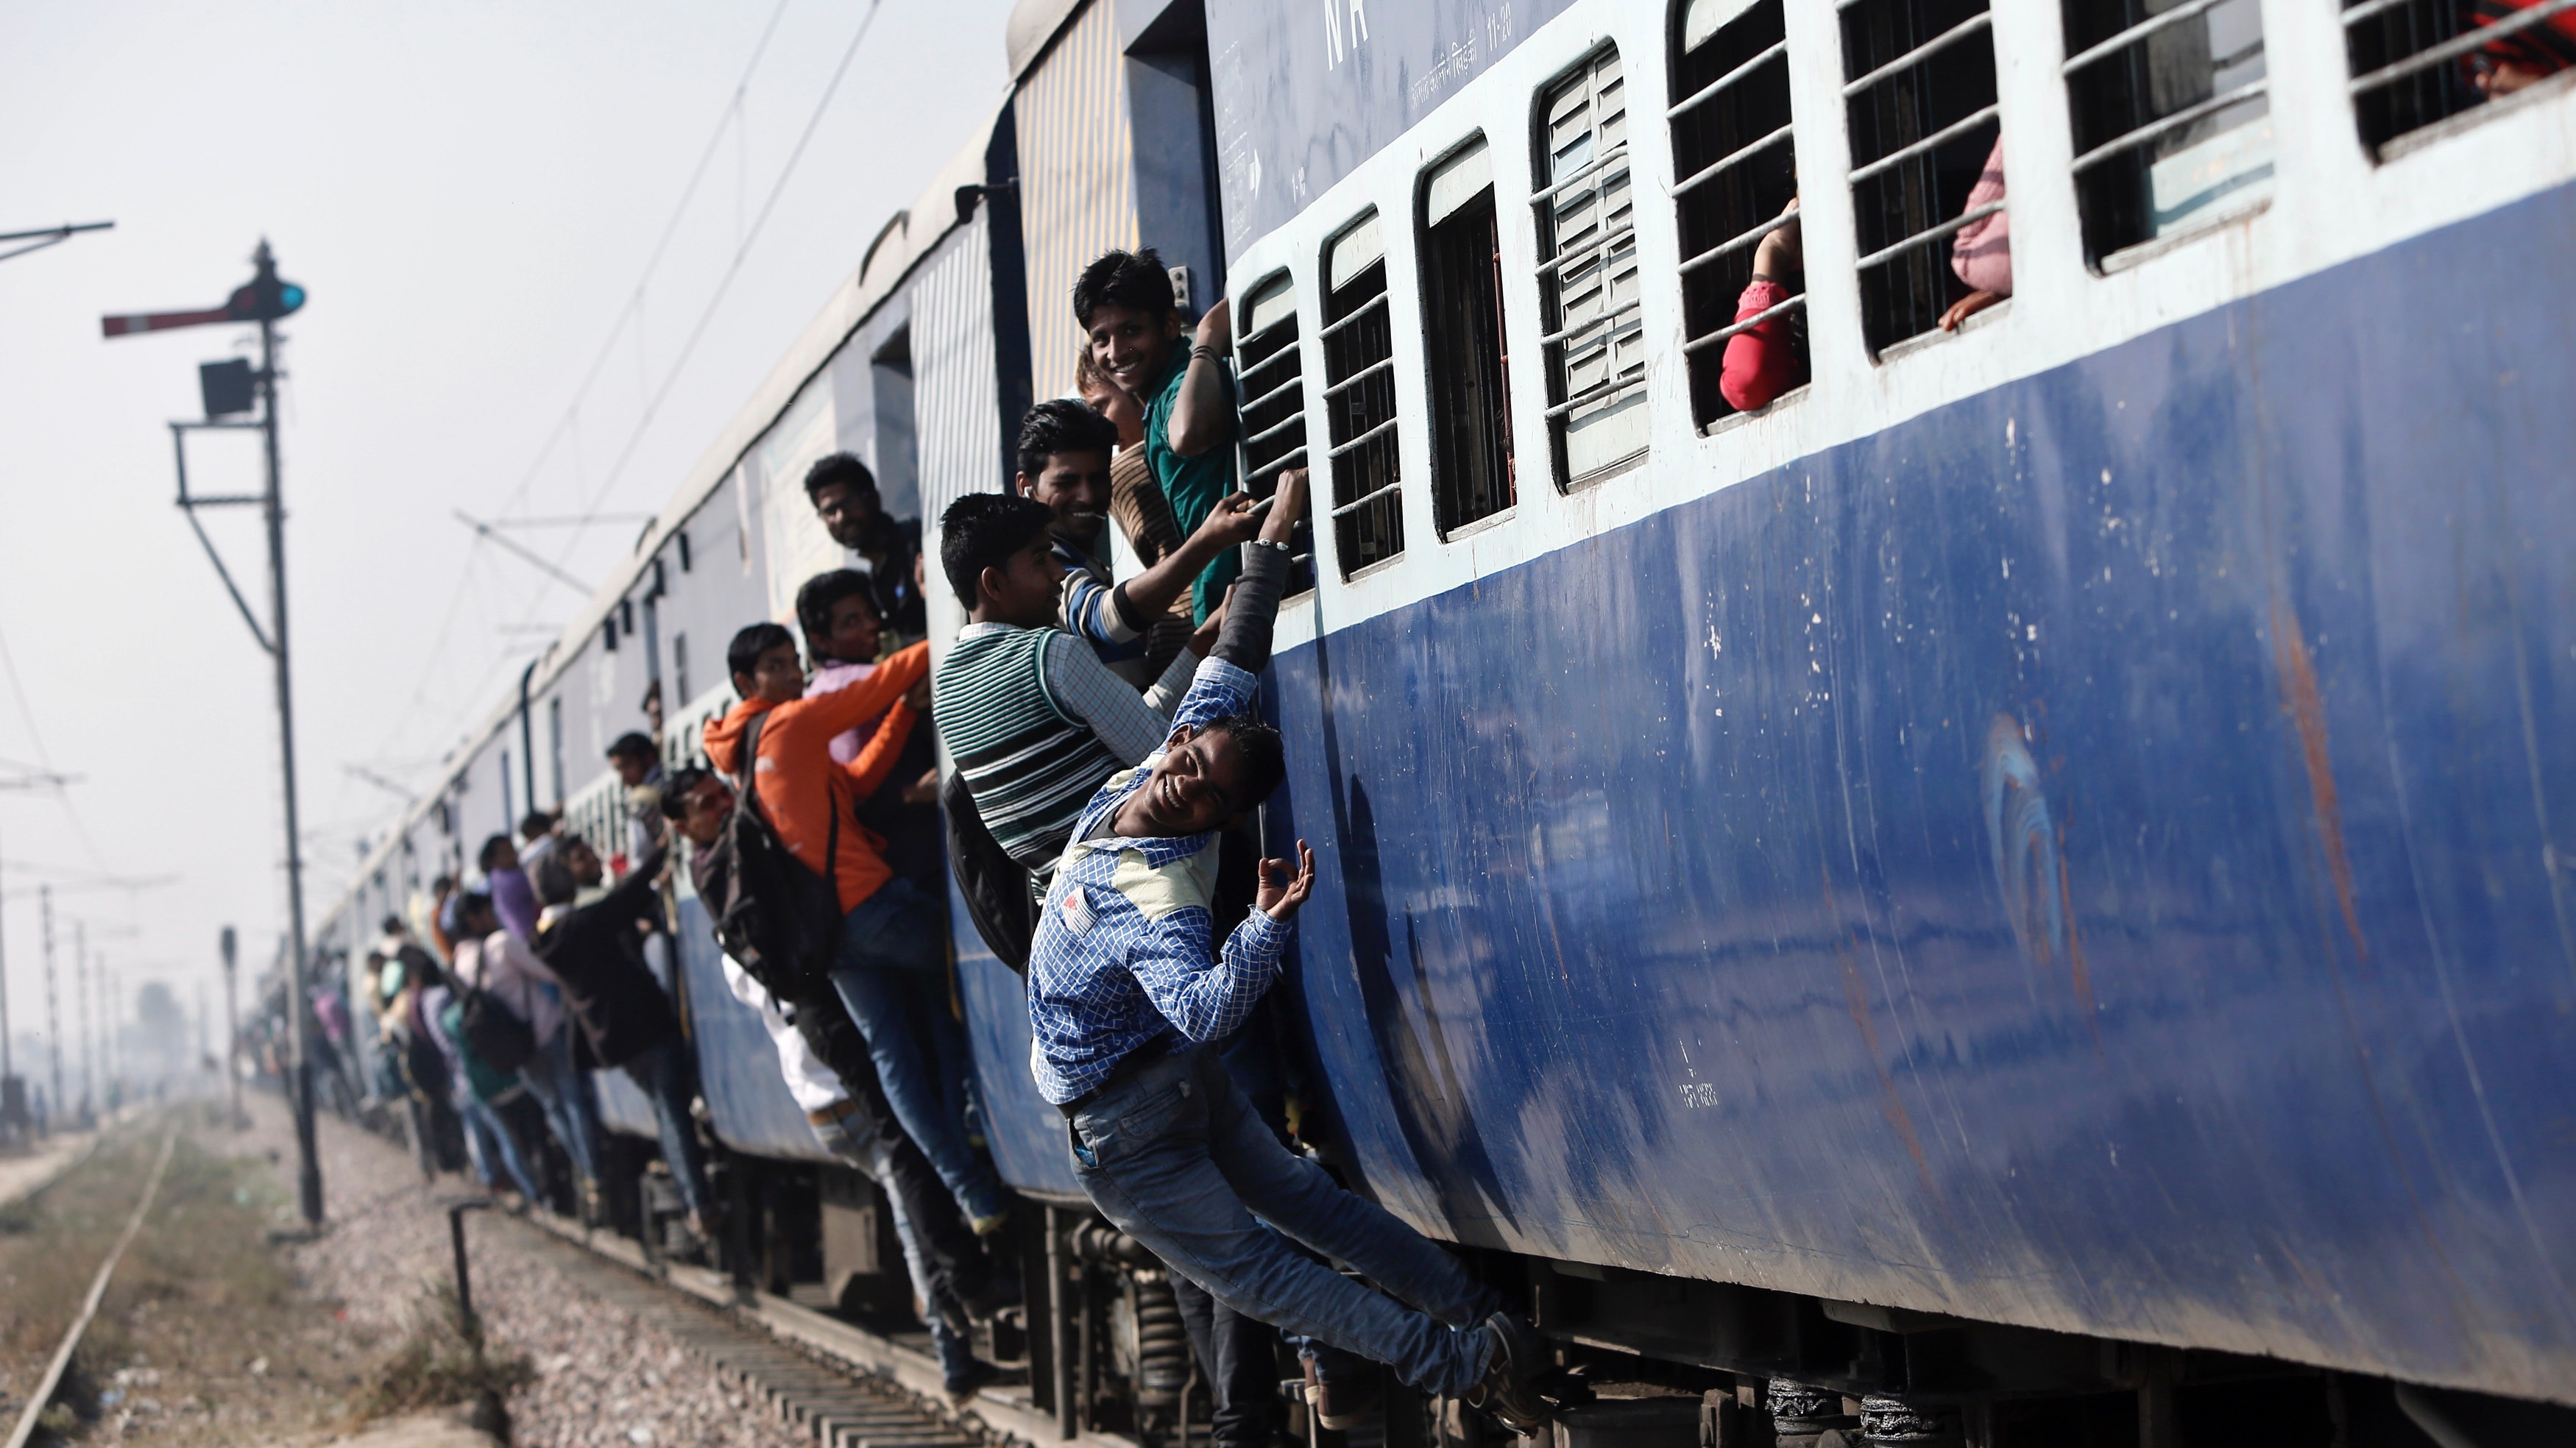 Passengers travel in an overcrowded train near a railway station at Loni town in the northern state of Uttar Pradesh, India, February 23, 2016. India's federal-run railways will have to depend on more government support and borrowing to fix their finances in its budget on Thursday, with New Delhi reluctant to unveil steep fare hikes ahead of key state elections, officials said. Picture taken February 23, 2016. REUTERS/Anindito Mukherjee - RTX28CV1